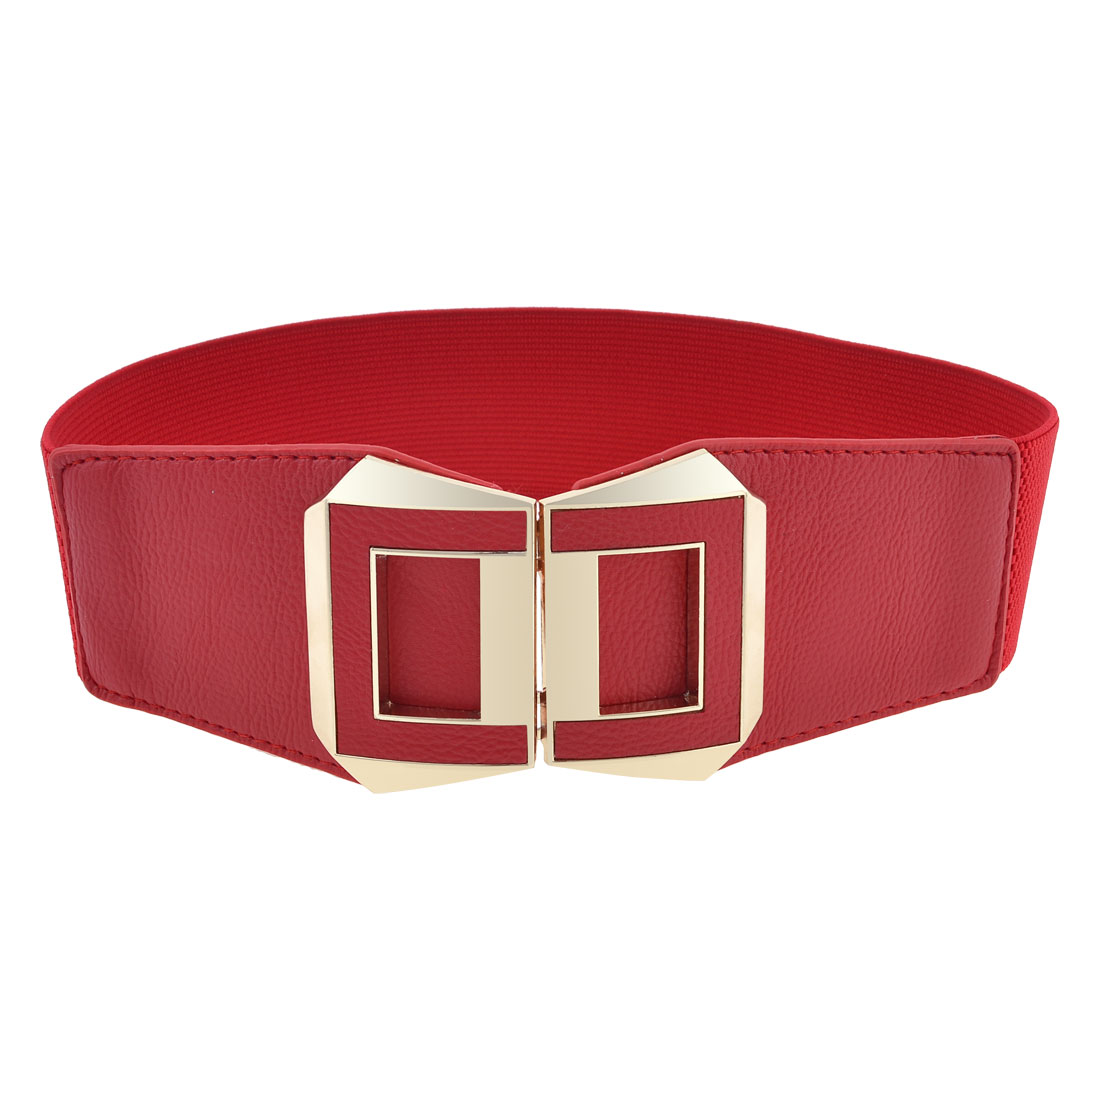 Women Double D Shaped Interlock Buckle Elastic Band Cinch Belt Red